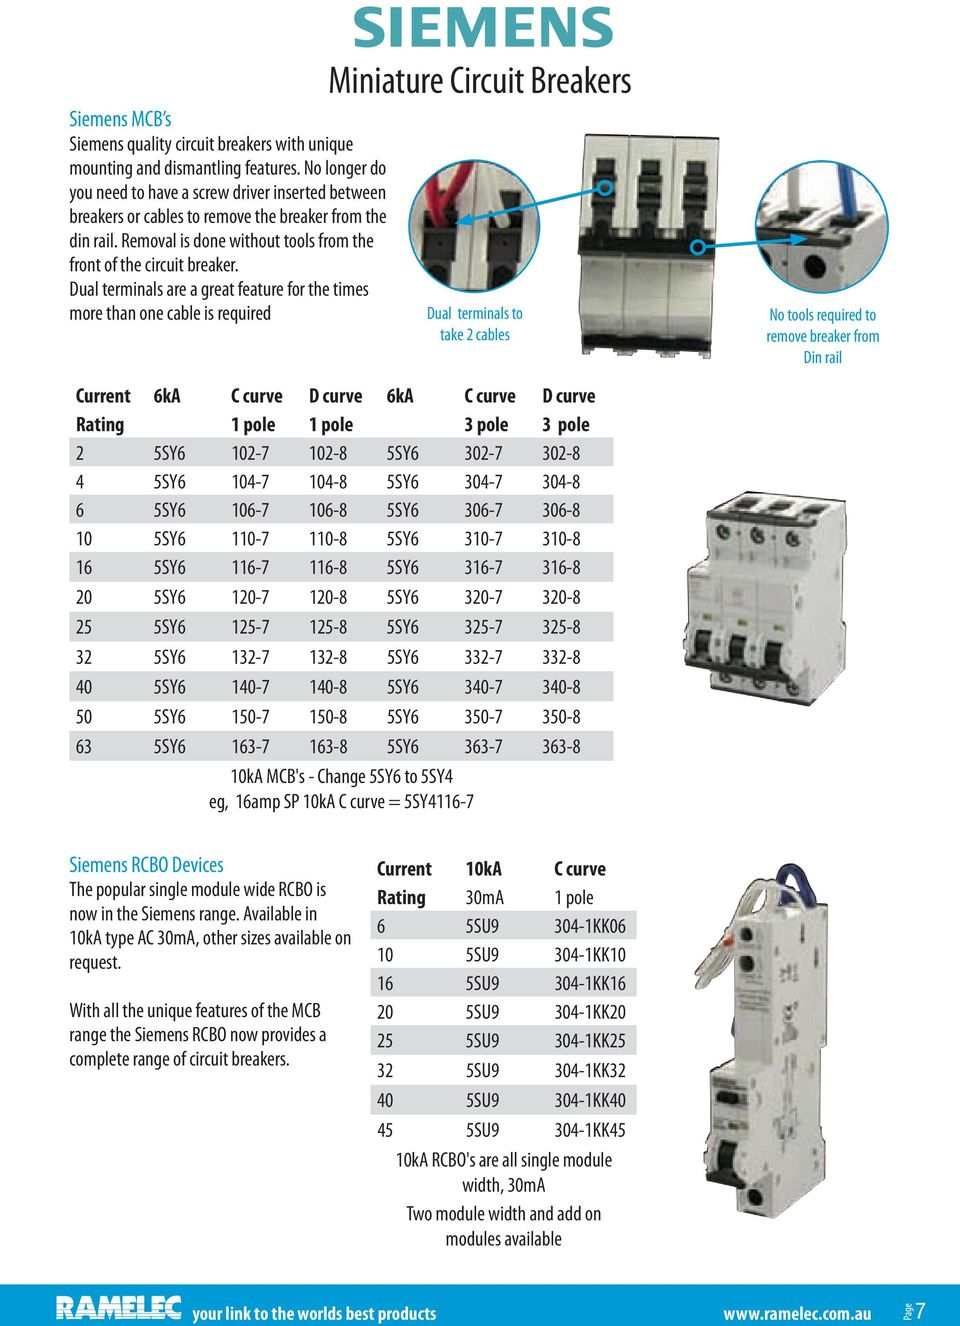 Distribution Boards Chassis Transfer Switches Pdf Spm Circuit Breaker 3p 25amp 6ka Rating 3 Pole 25 Amp Dual Terminals Are A Great Feature For The Times More Than One Cable Is Required Miniature 10 Moulded Case